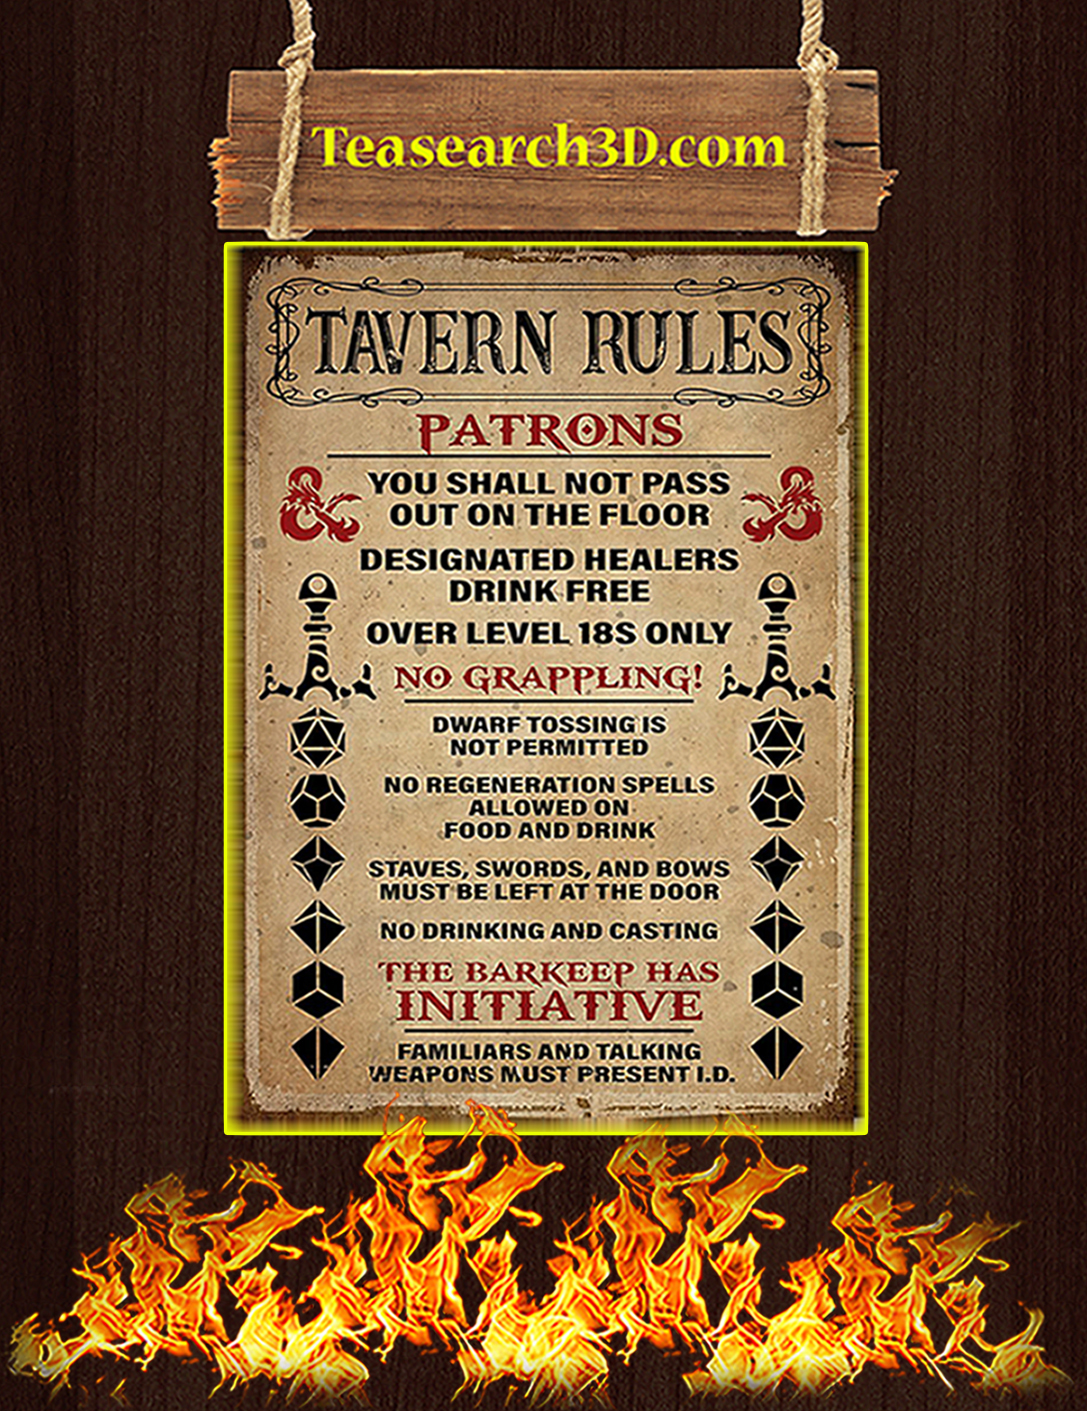 Game tavern rules patrons poster A2